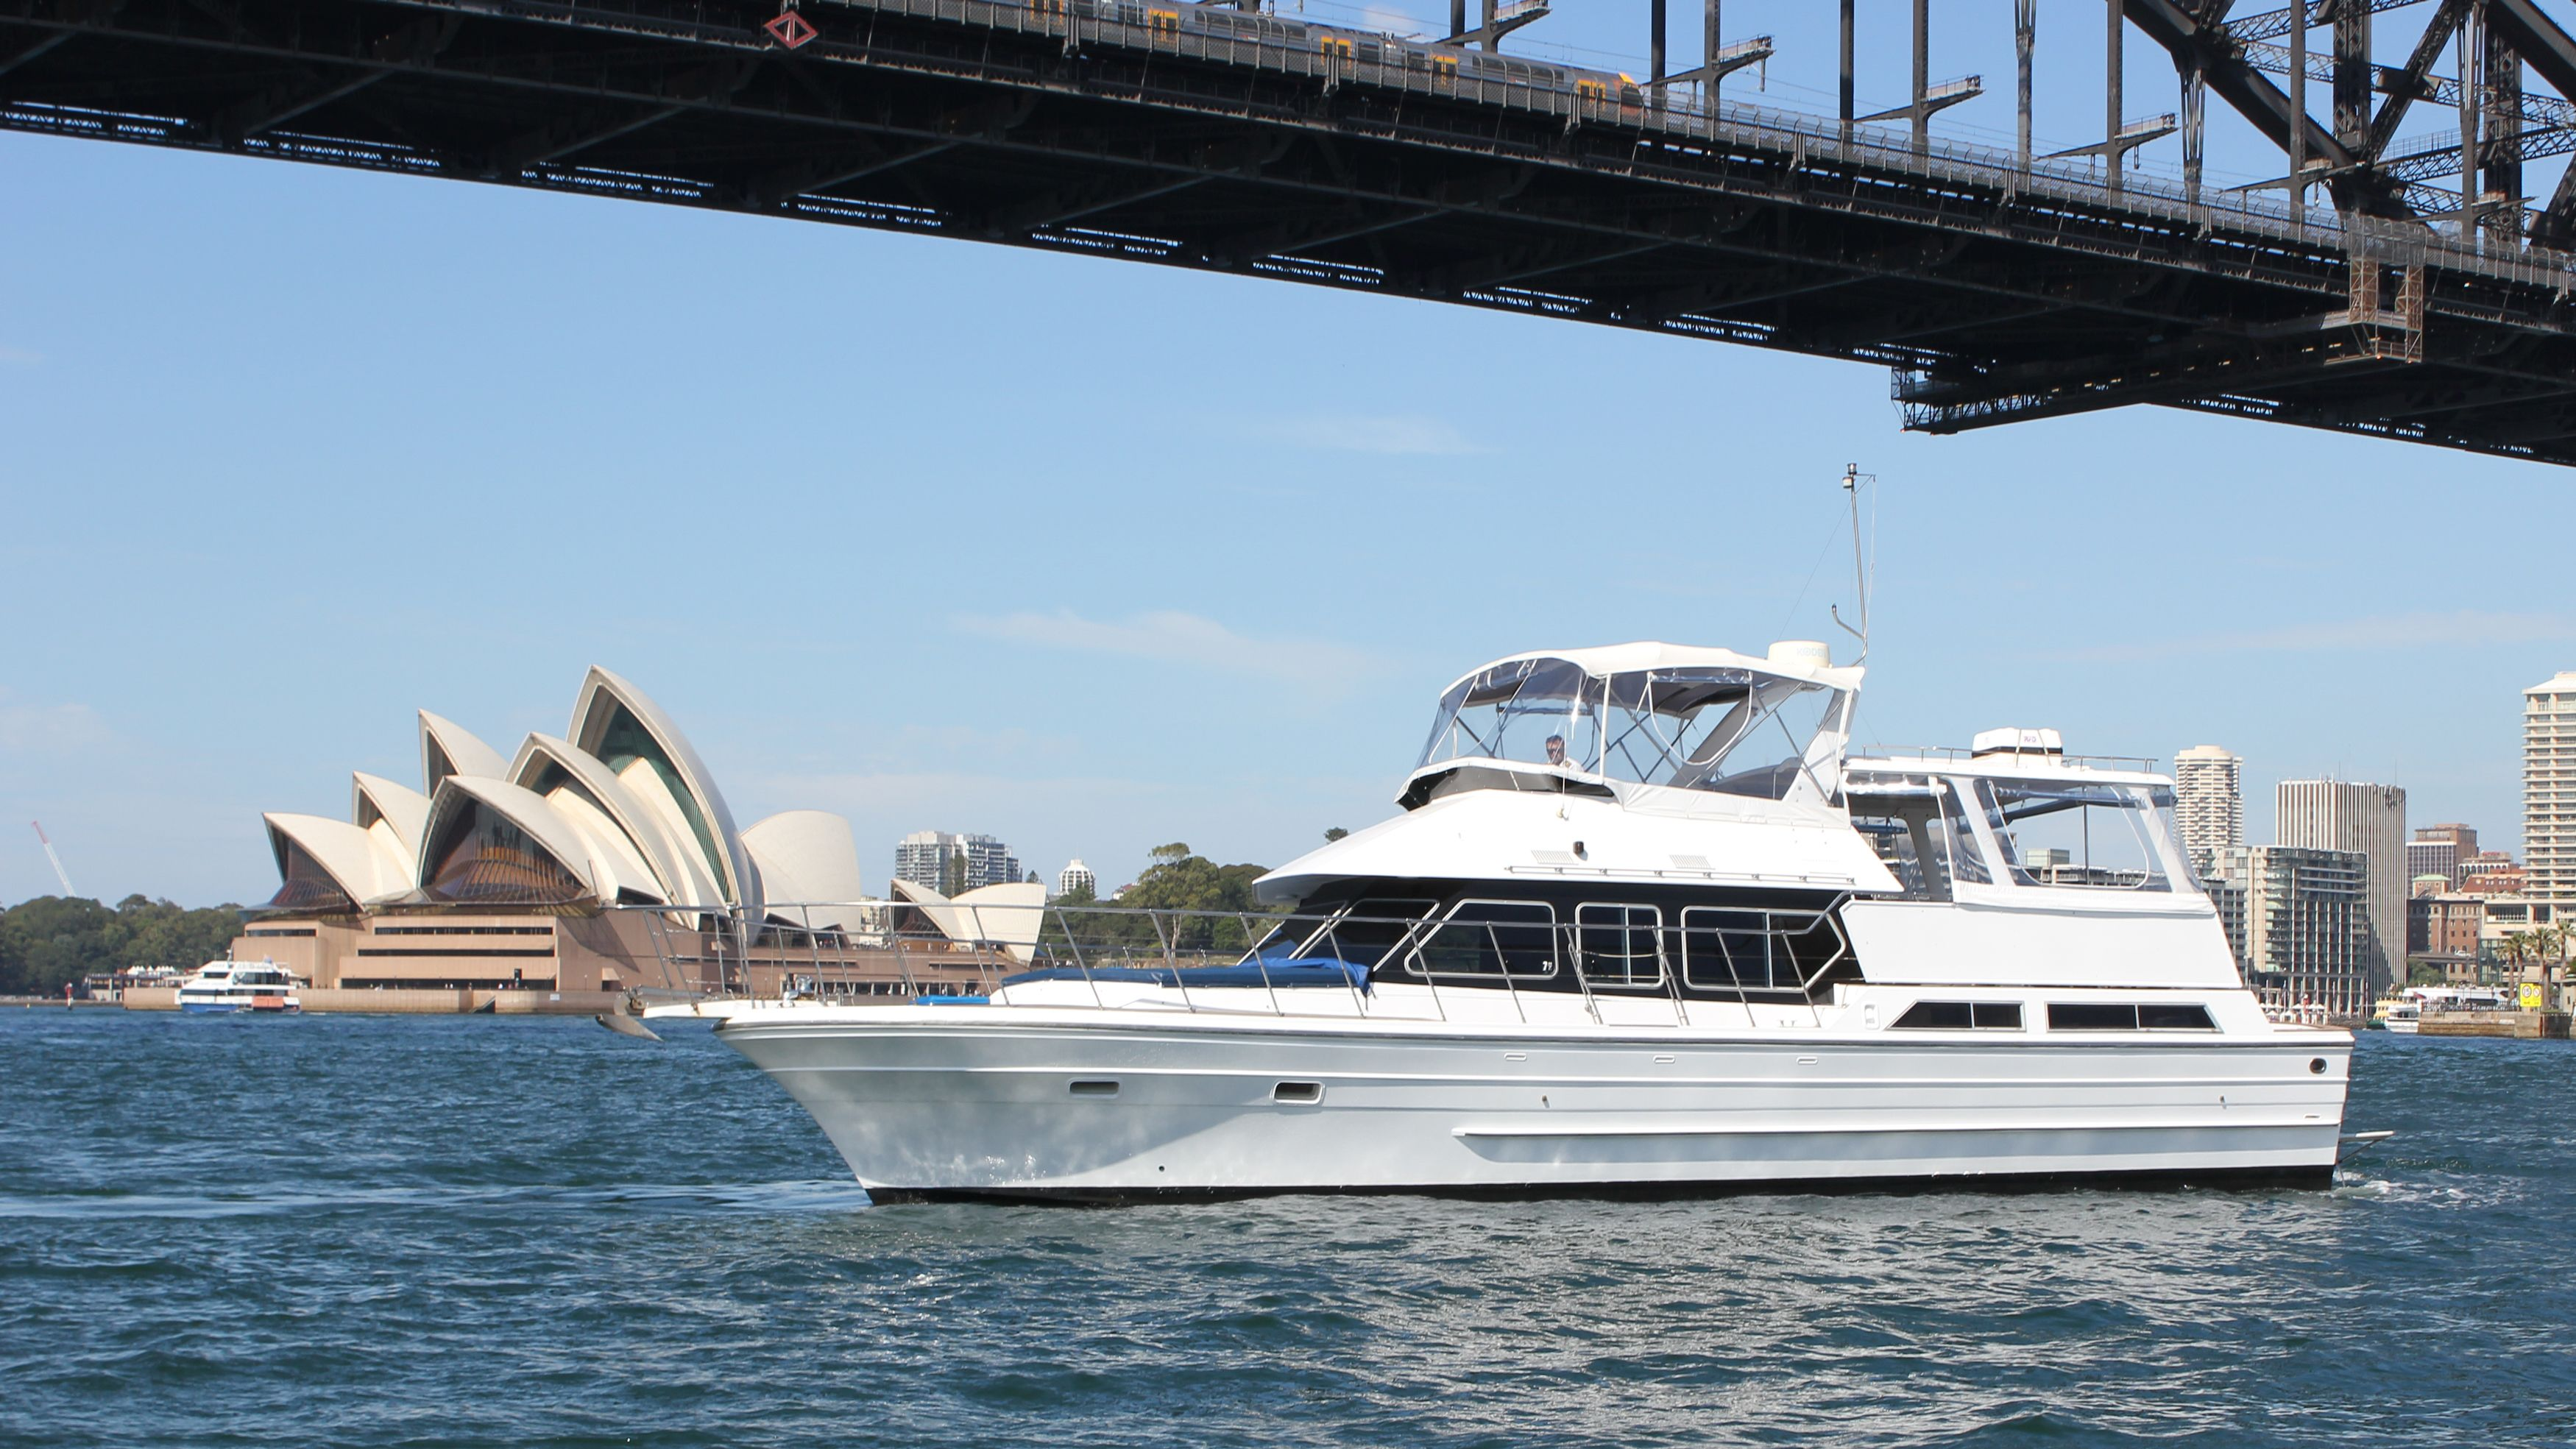 A yacht in the Sydney harbor